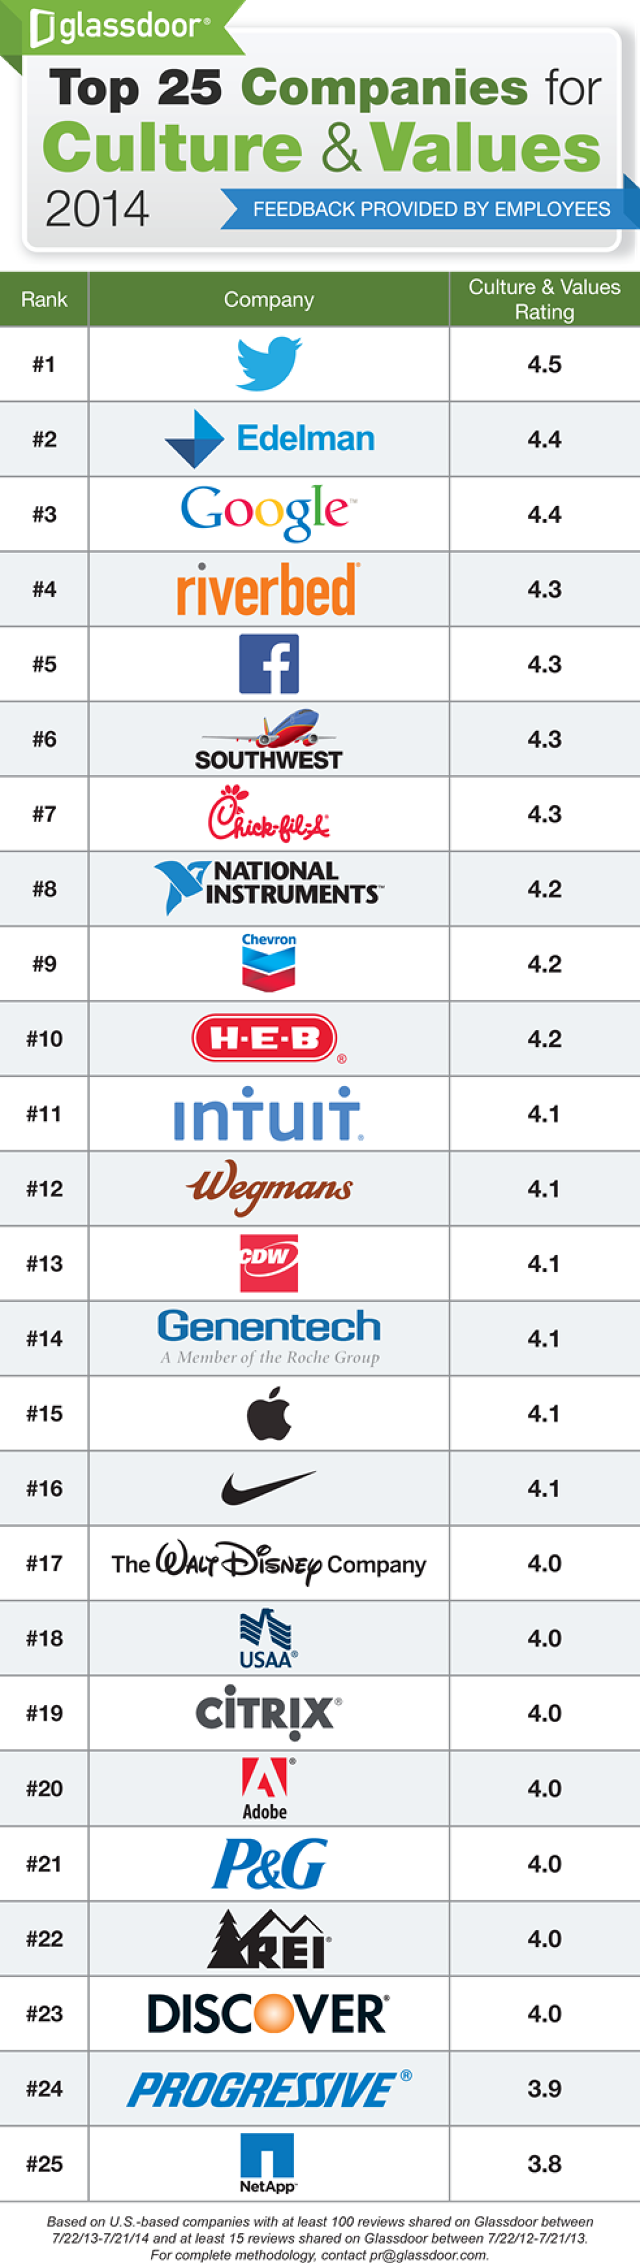 glassdoor top 25